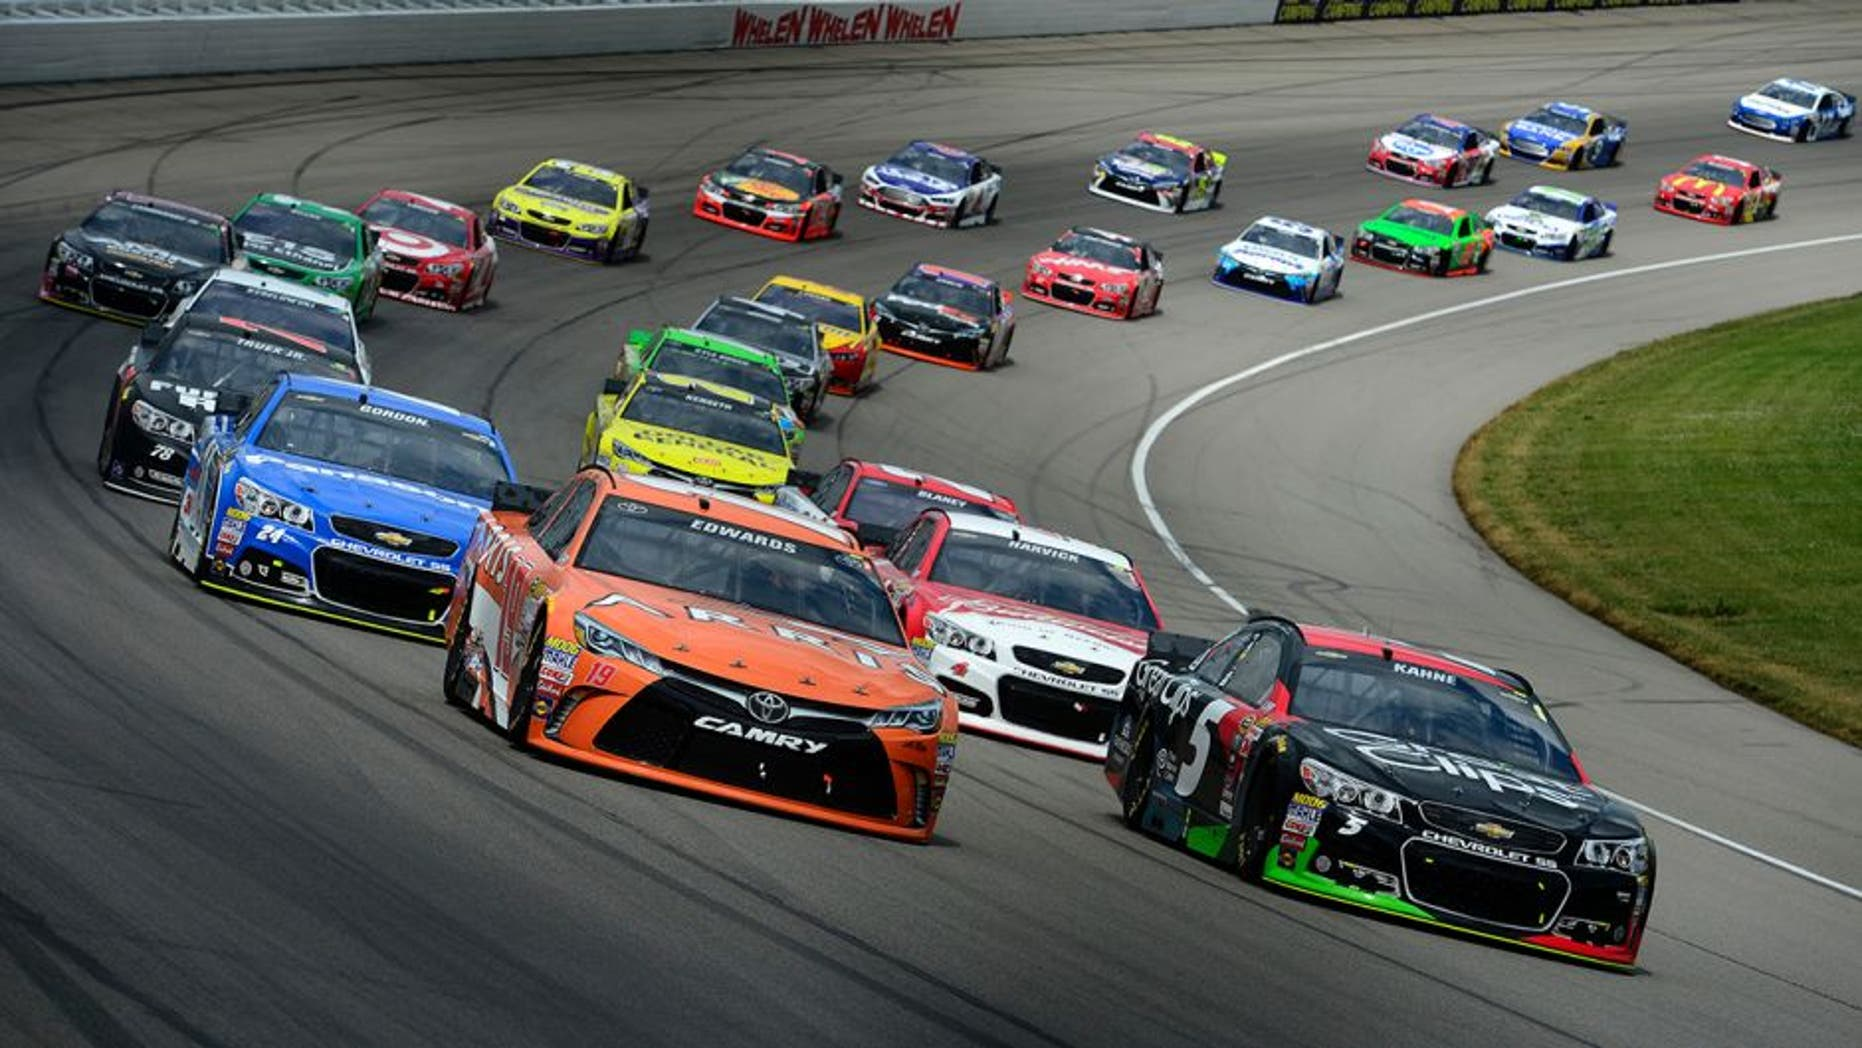 BROOKLYN, MI - JUNE 14: Carl Edwards, driver of the #19 ARRIS Toyota, and Kasey Kahne, driver of the #5 Great Clips Chevrolet, lead a pack of cars during the NASCAR Sprint Cup Series Quicken Loans 400 at Michigan International Speedway on June 14, 2015 in Brooklyn, Michigan. (Photo by Robert Laberge/NASCAR via Getty Images)